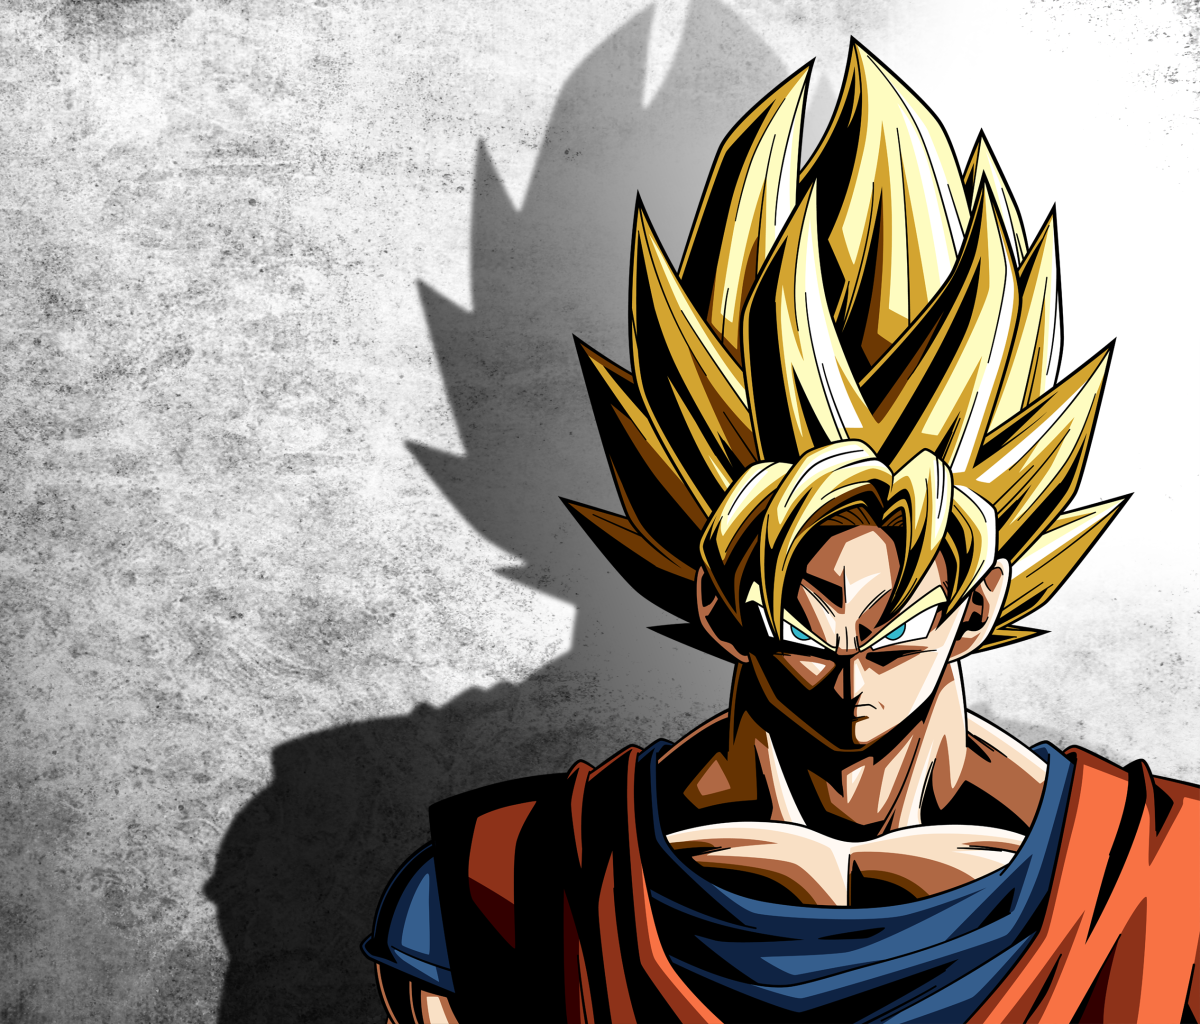 8 dragon ball z samsunggalaxy tab 3 70 1200x1024 wallpapers mobile wallpaper 647720 voltagebd